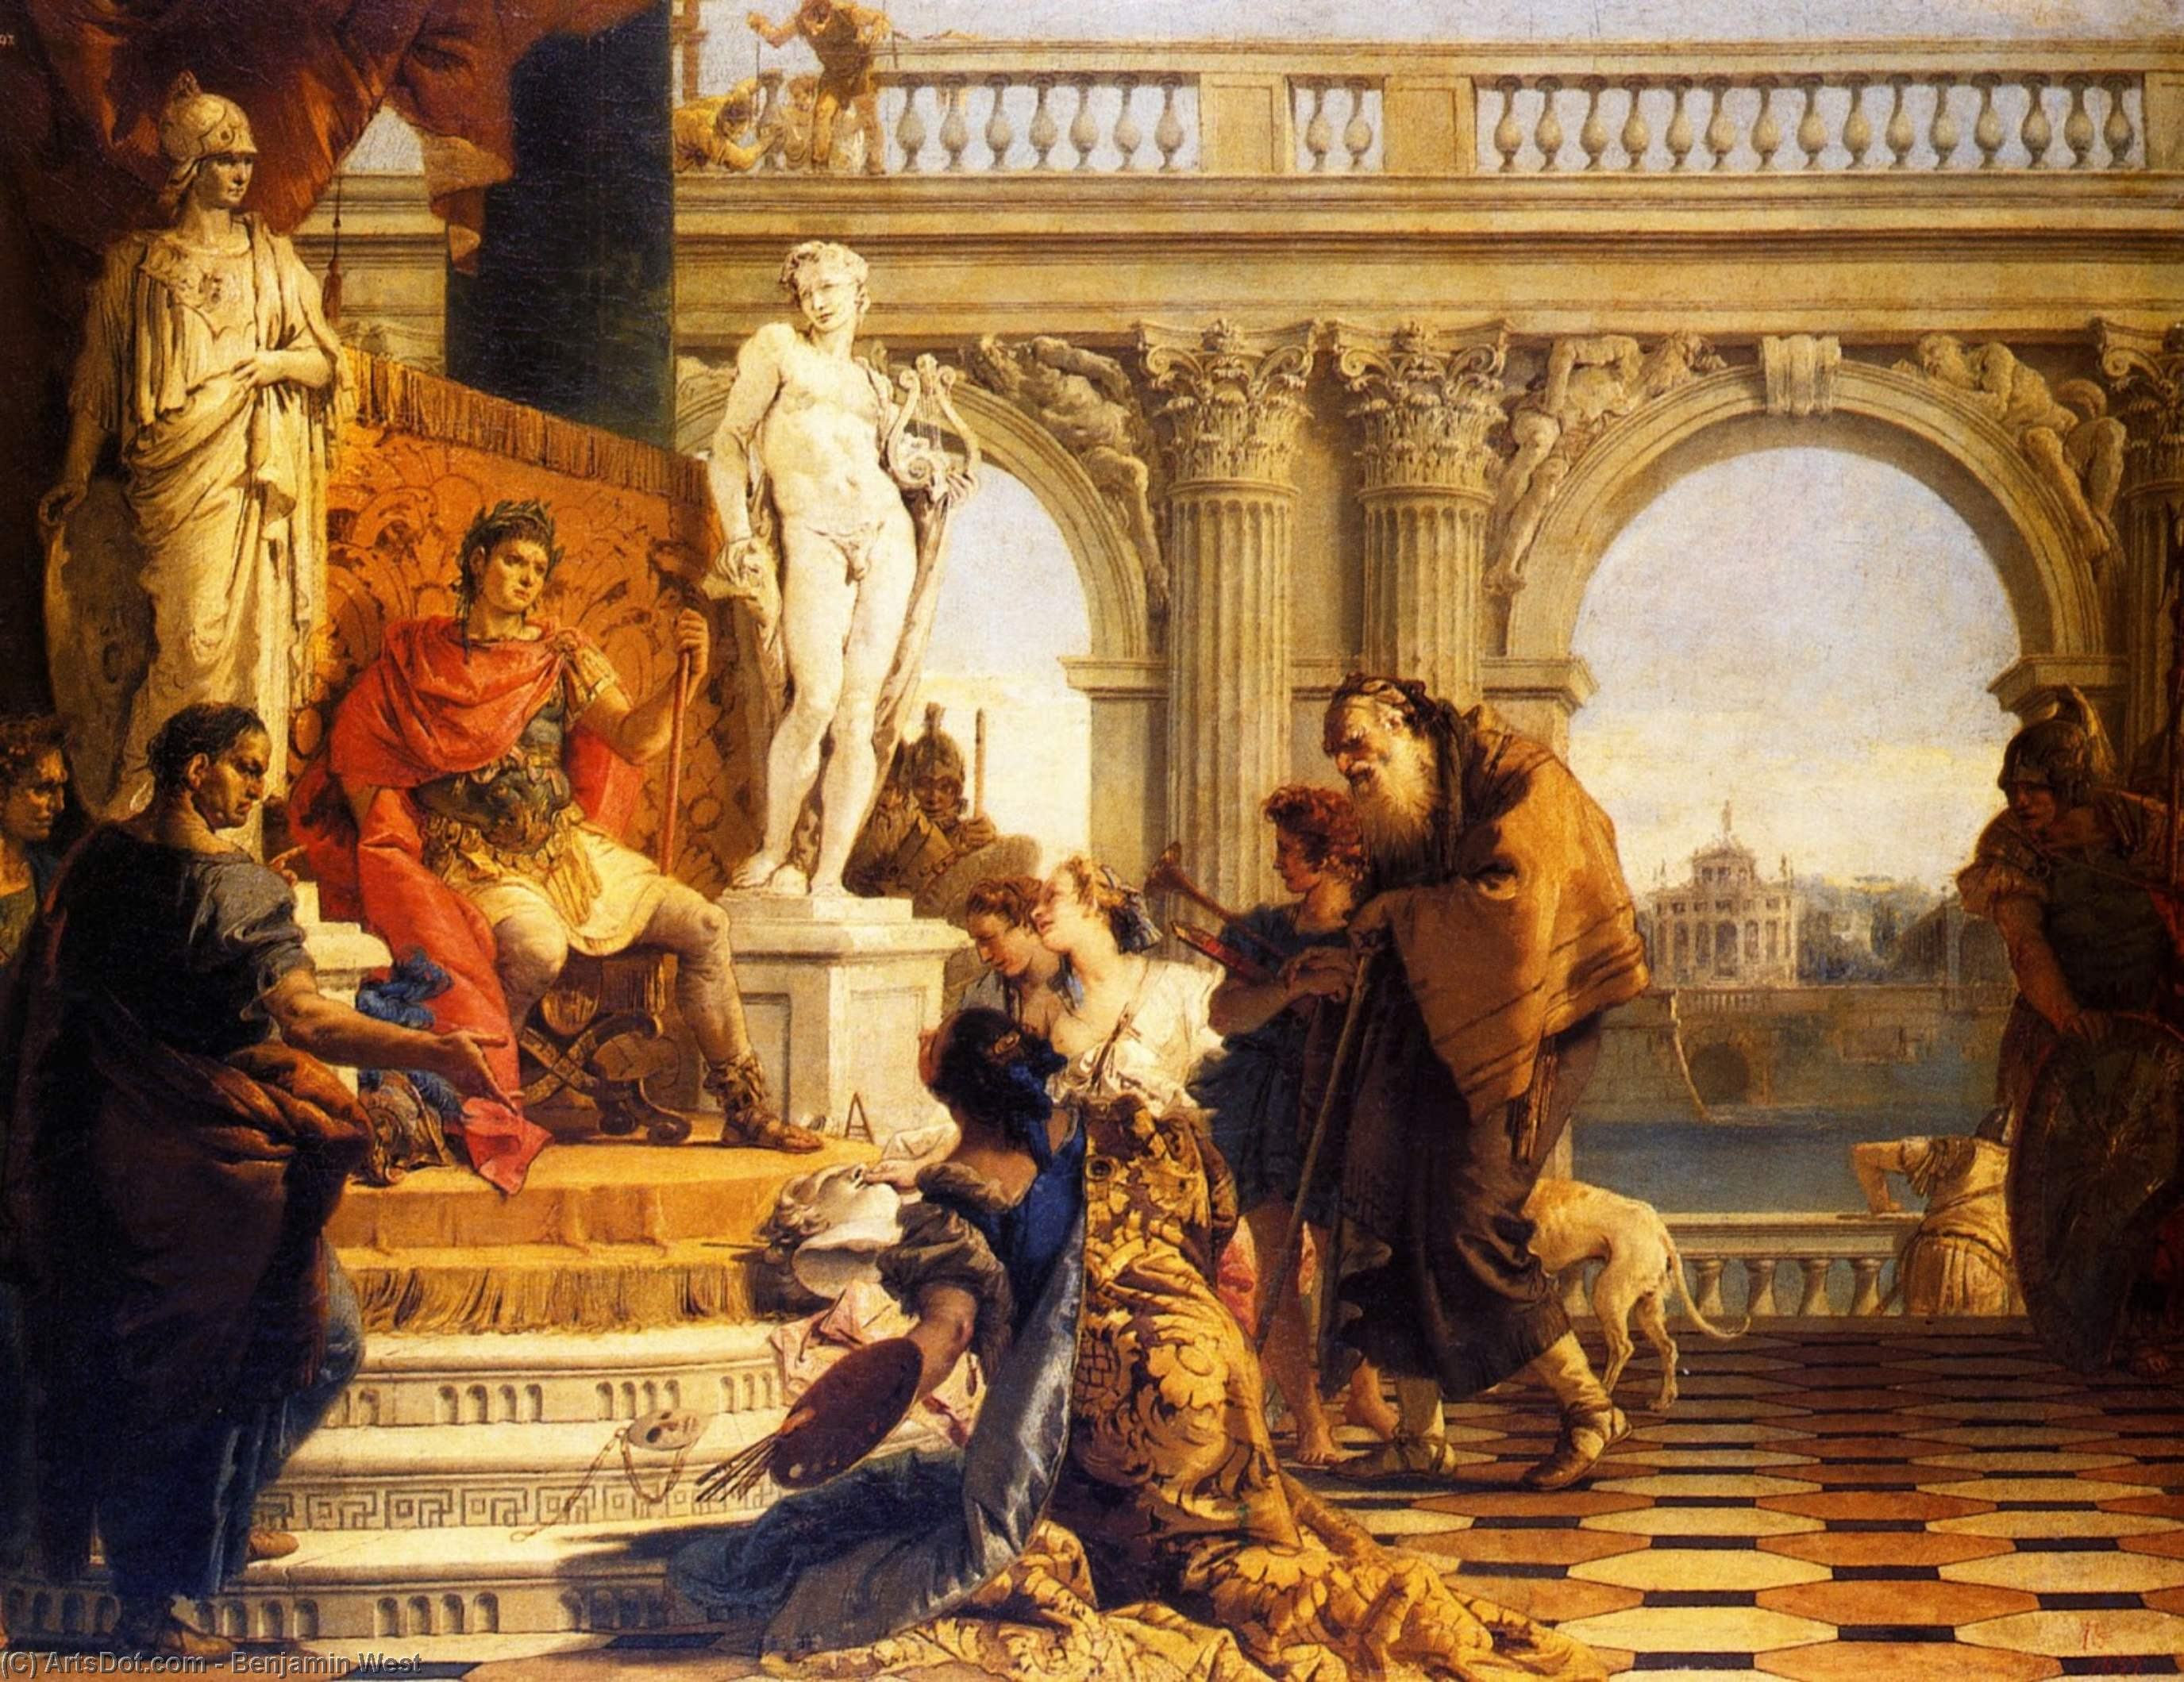 Wikioo.org - The Encyclopedia of Fine Arts - Painting, Artwork by Benjamin West - Mercury and Argus